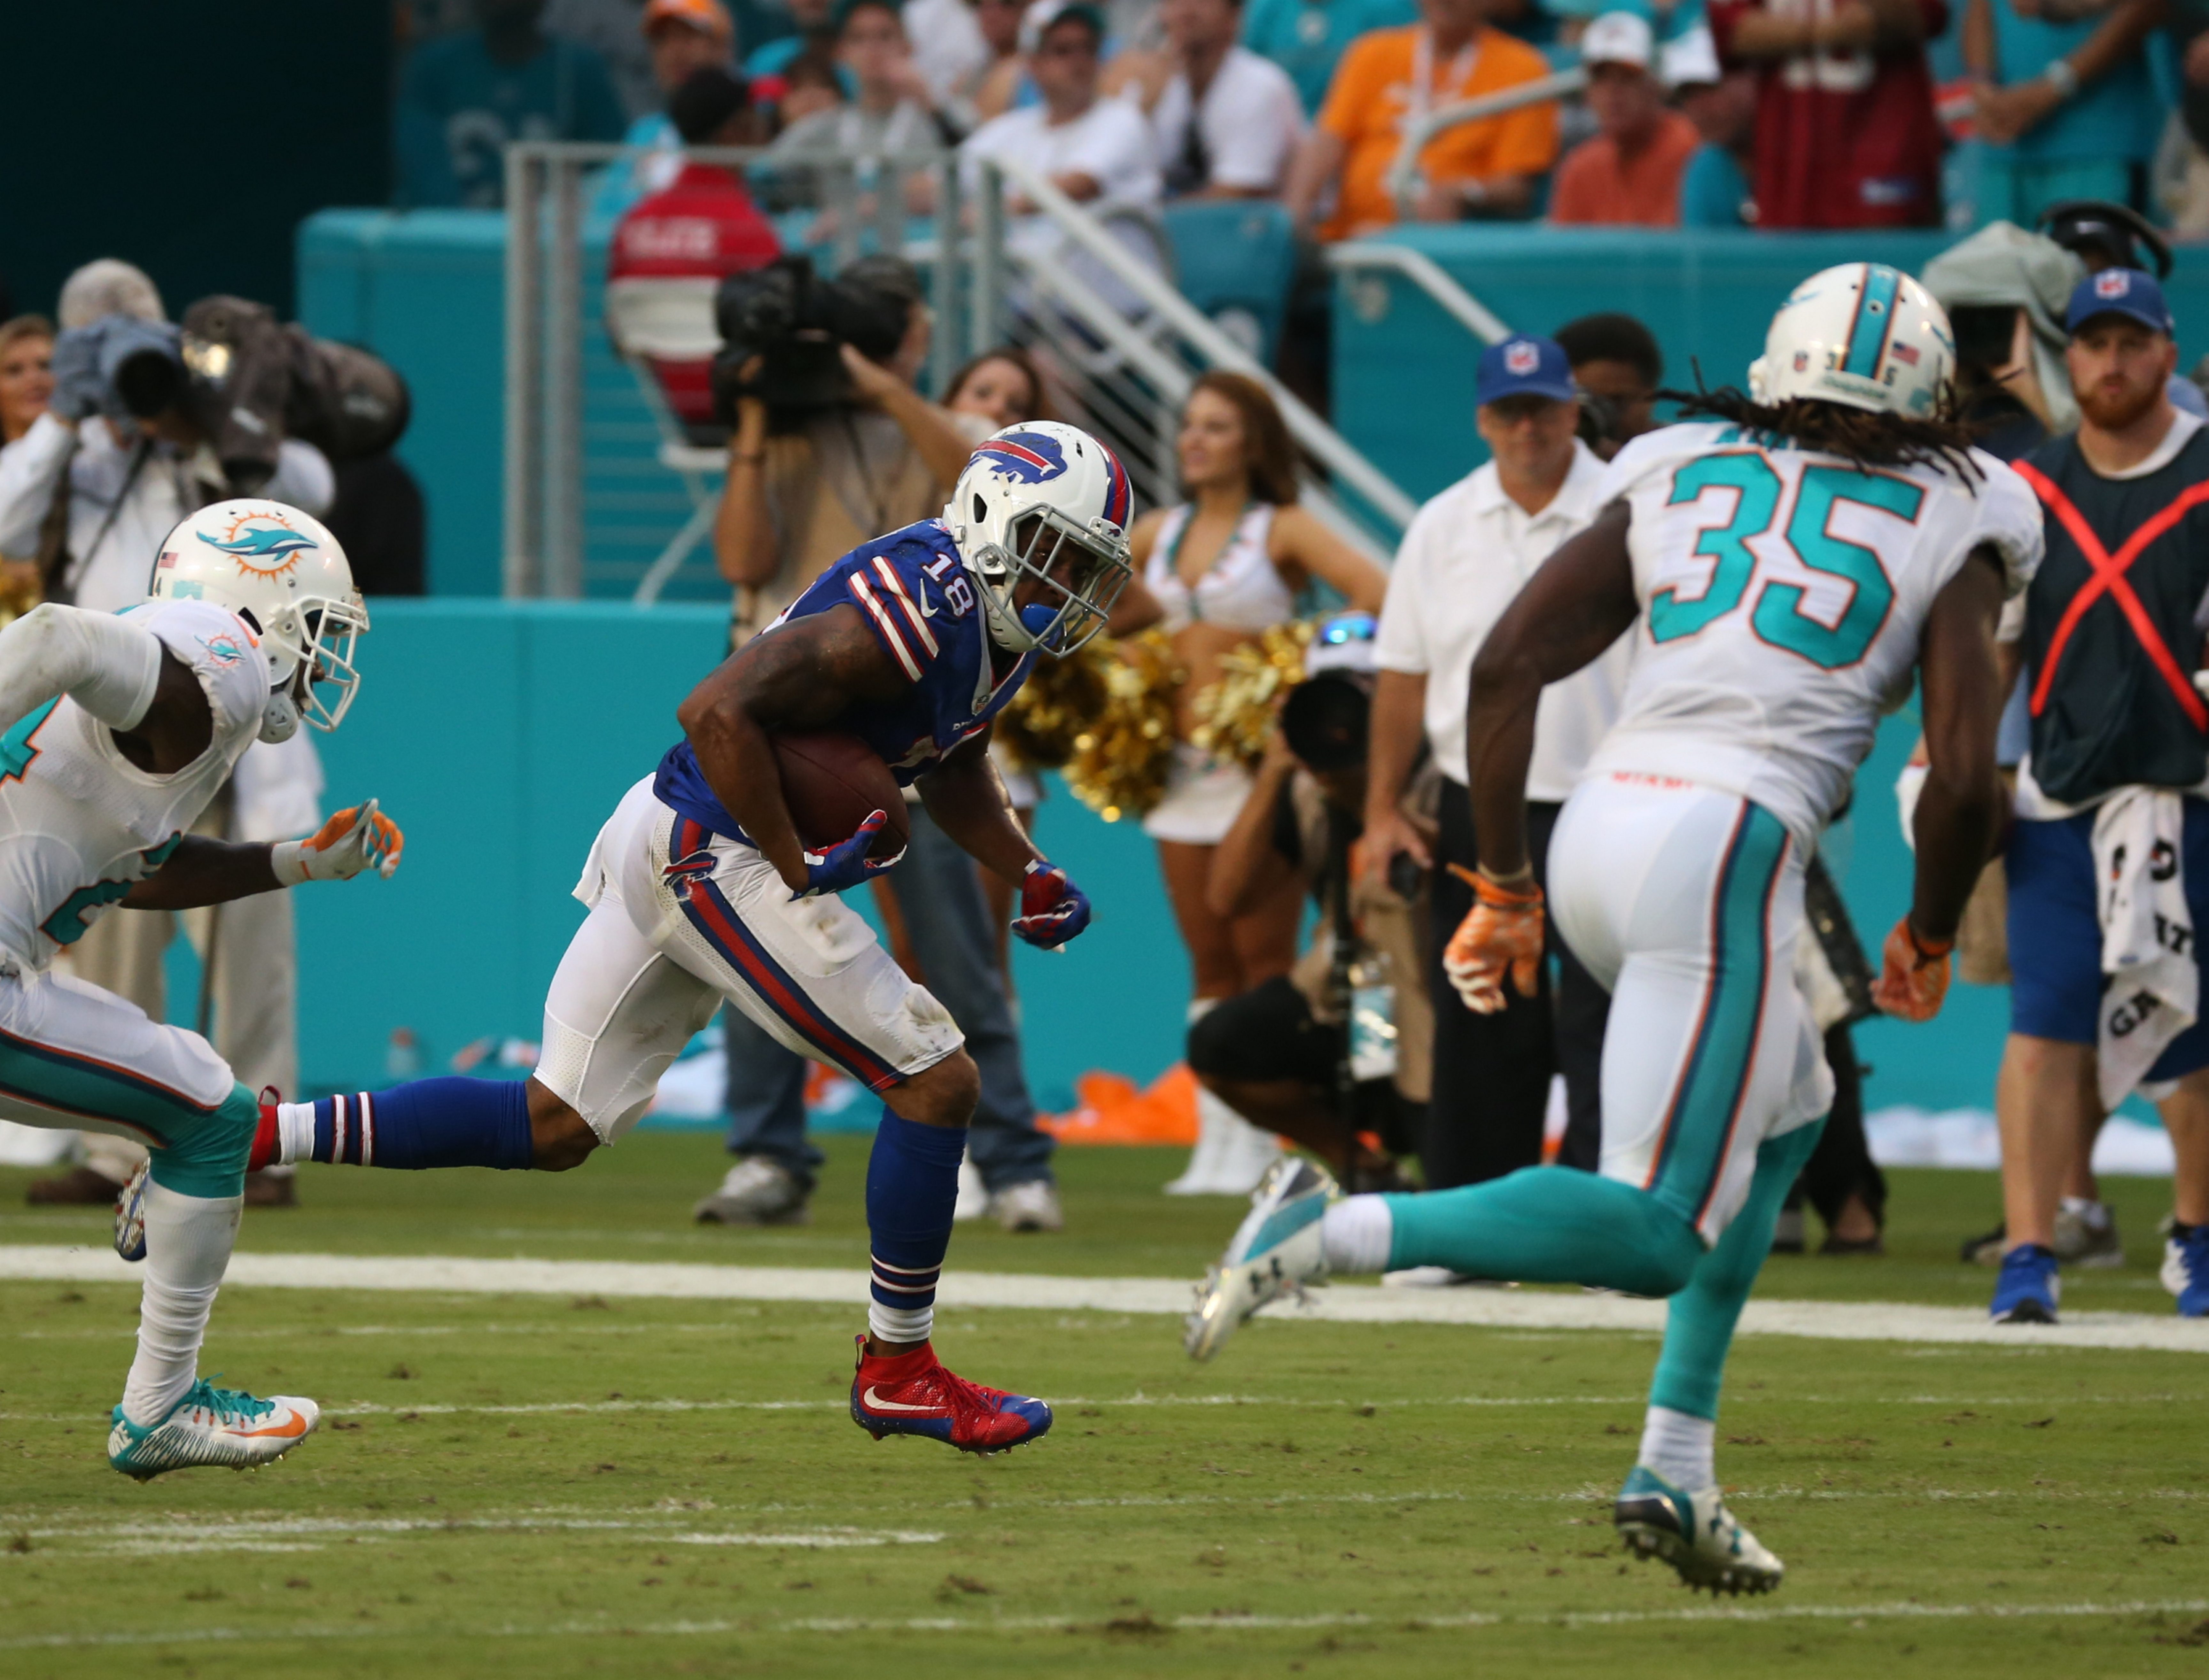 Buffalo Bills wide receiver Percy Harvin (18) runs the ball against the Miami Dolphins on Sept. 27, 2015.